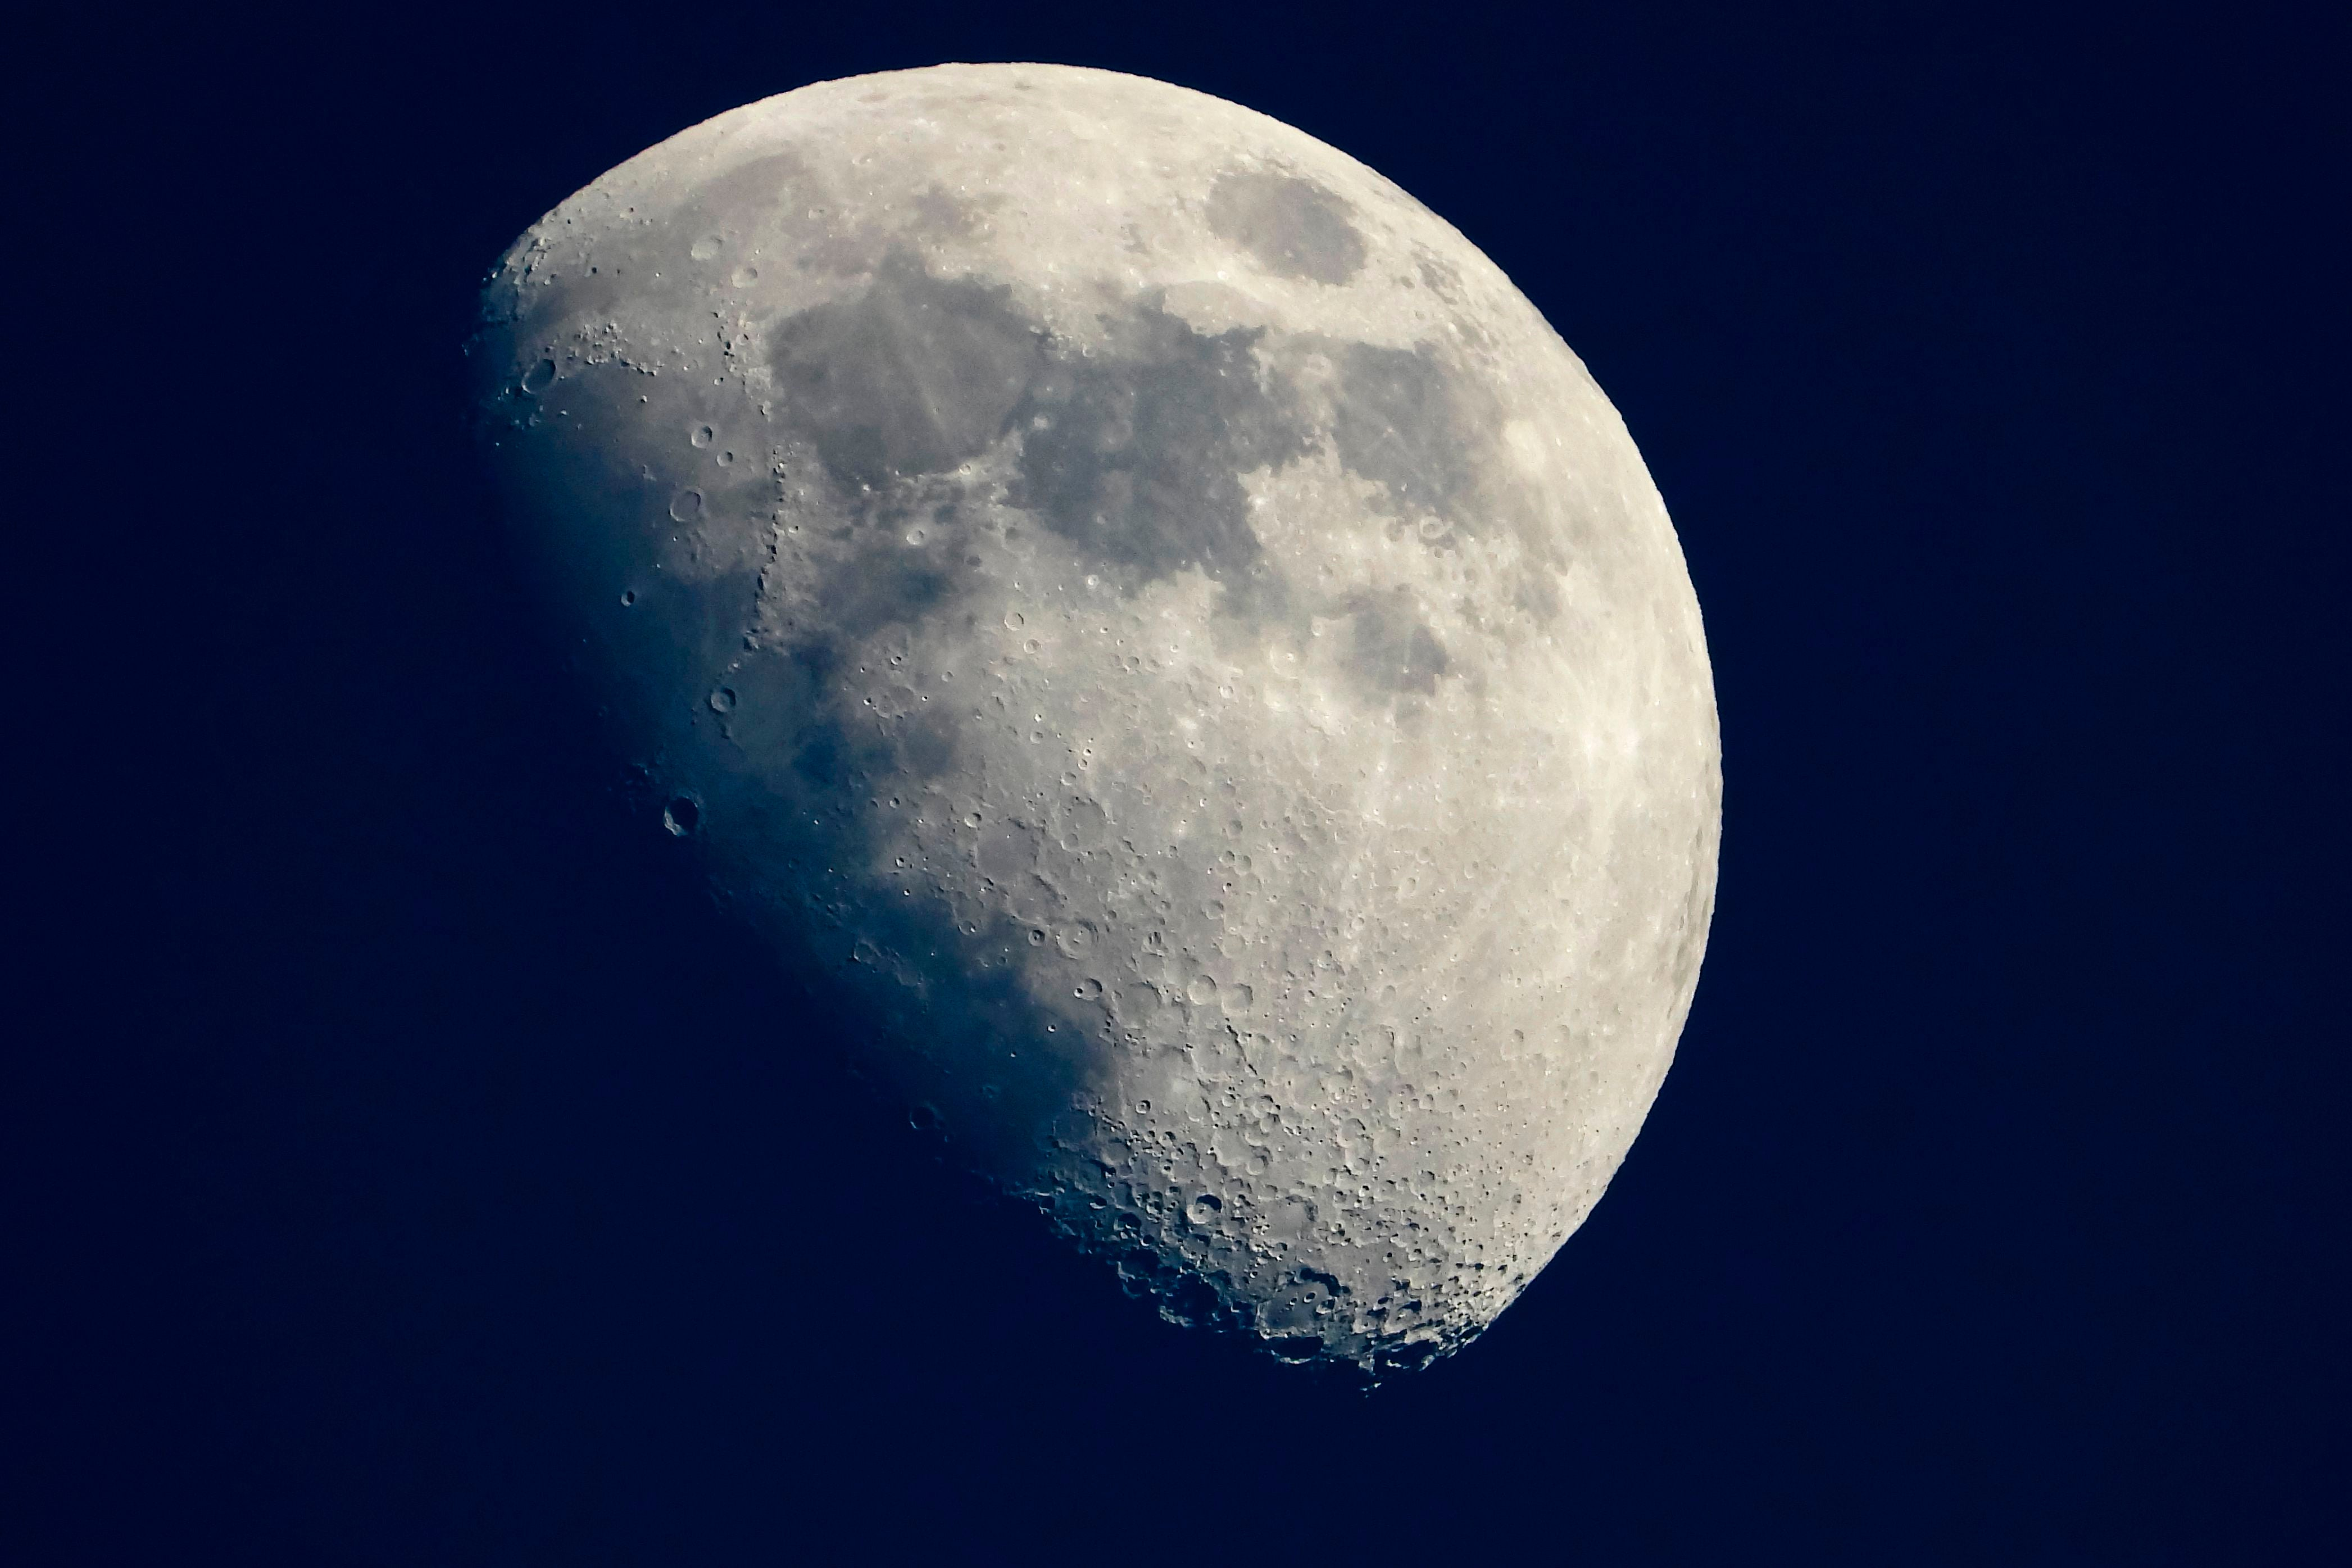 Scientists fear conflicts over the Moon's resources between governments and companies